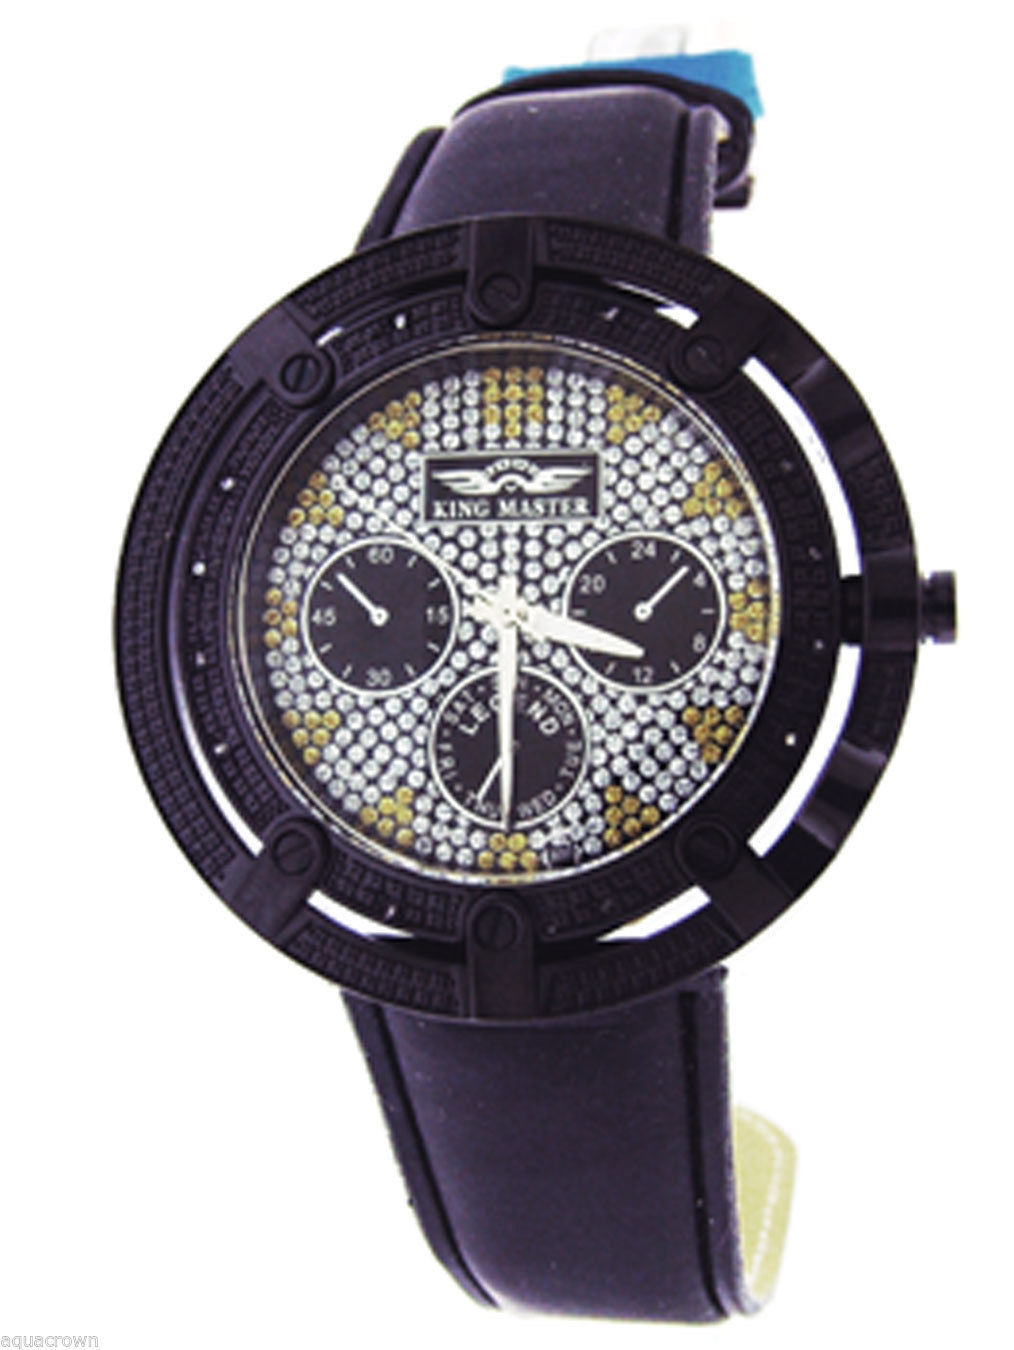 King Master Round 12 Diamonds 50MM Black Case Watch